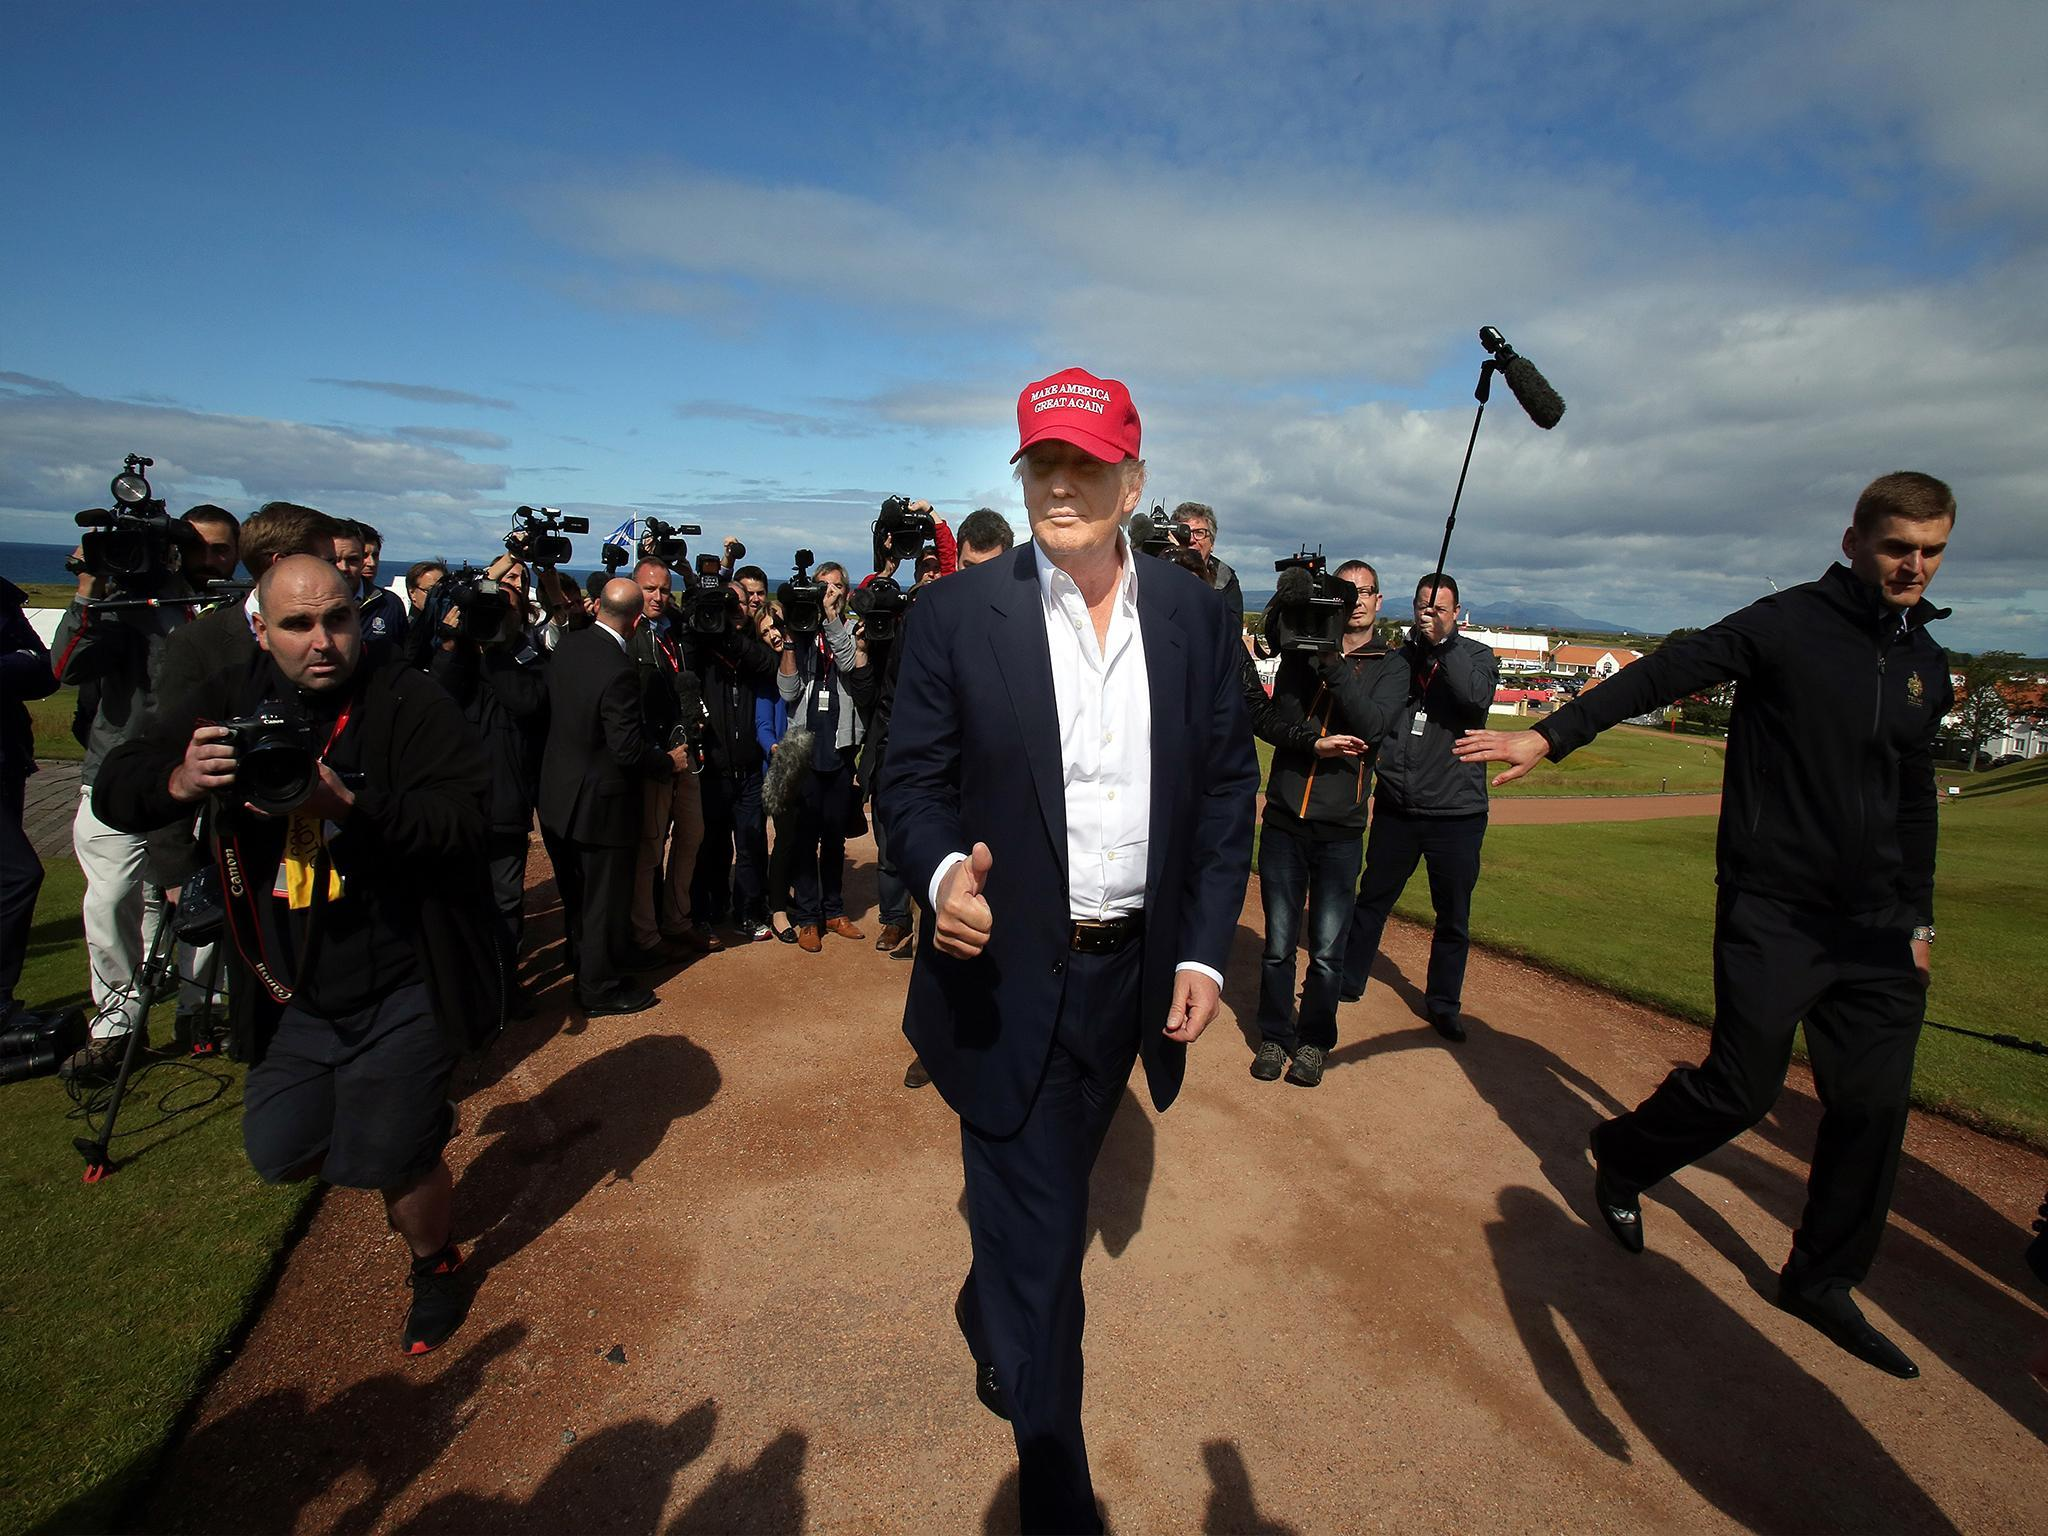 Ireland sends Trump a strong message on climate change over Doonbeg golf course sea wall